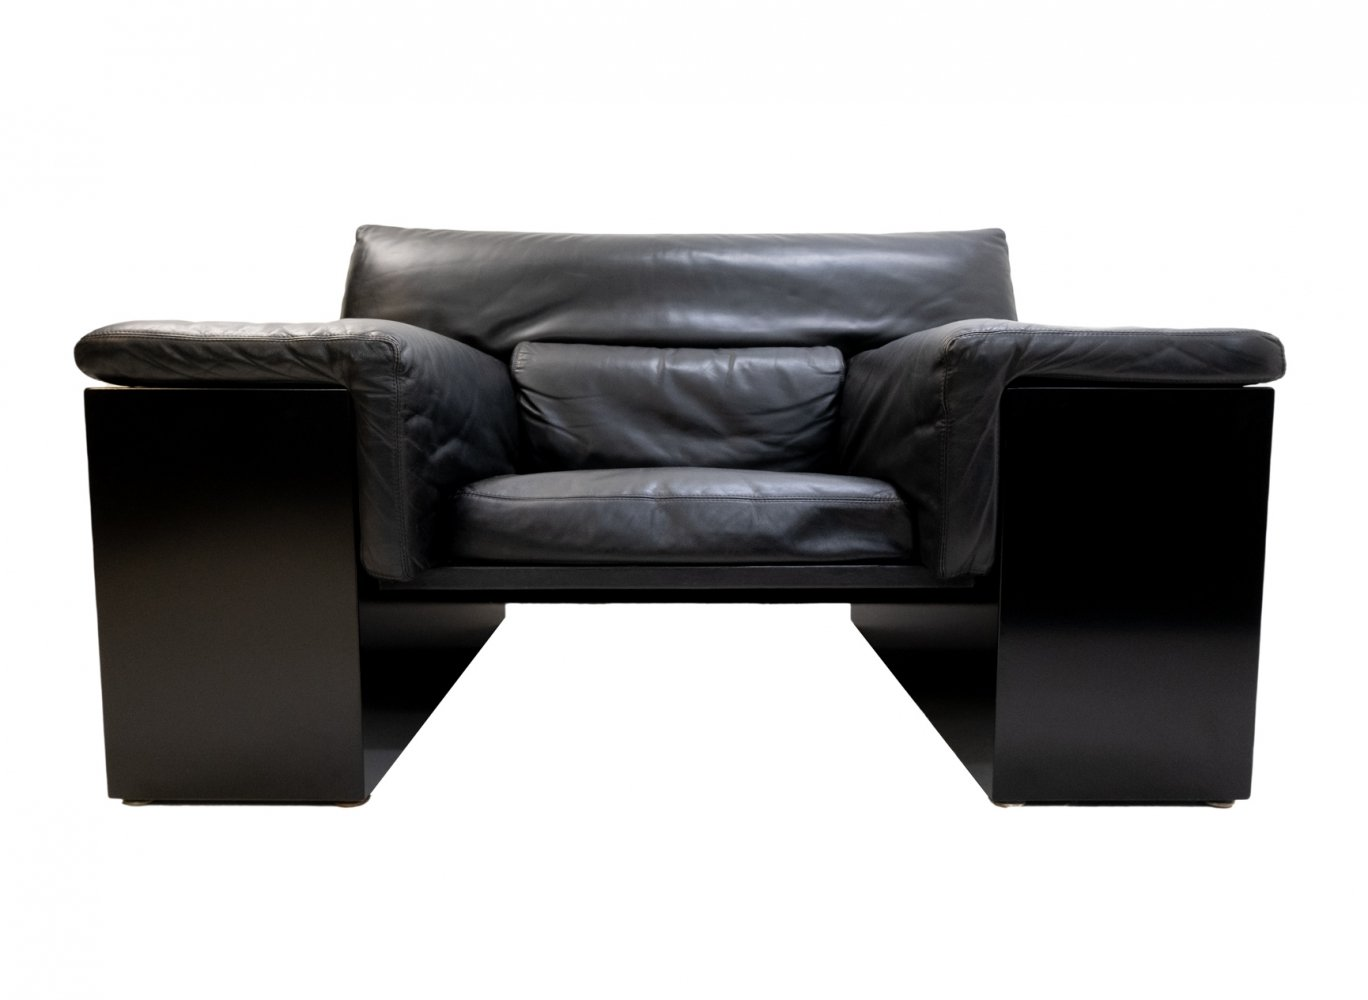 Brigadier lounge chair by Cini Boeri for Knoll, 1980s